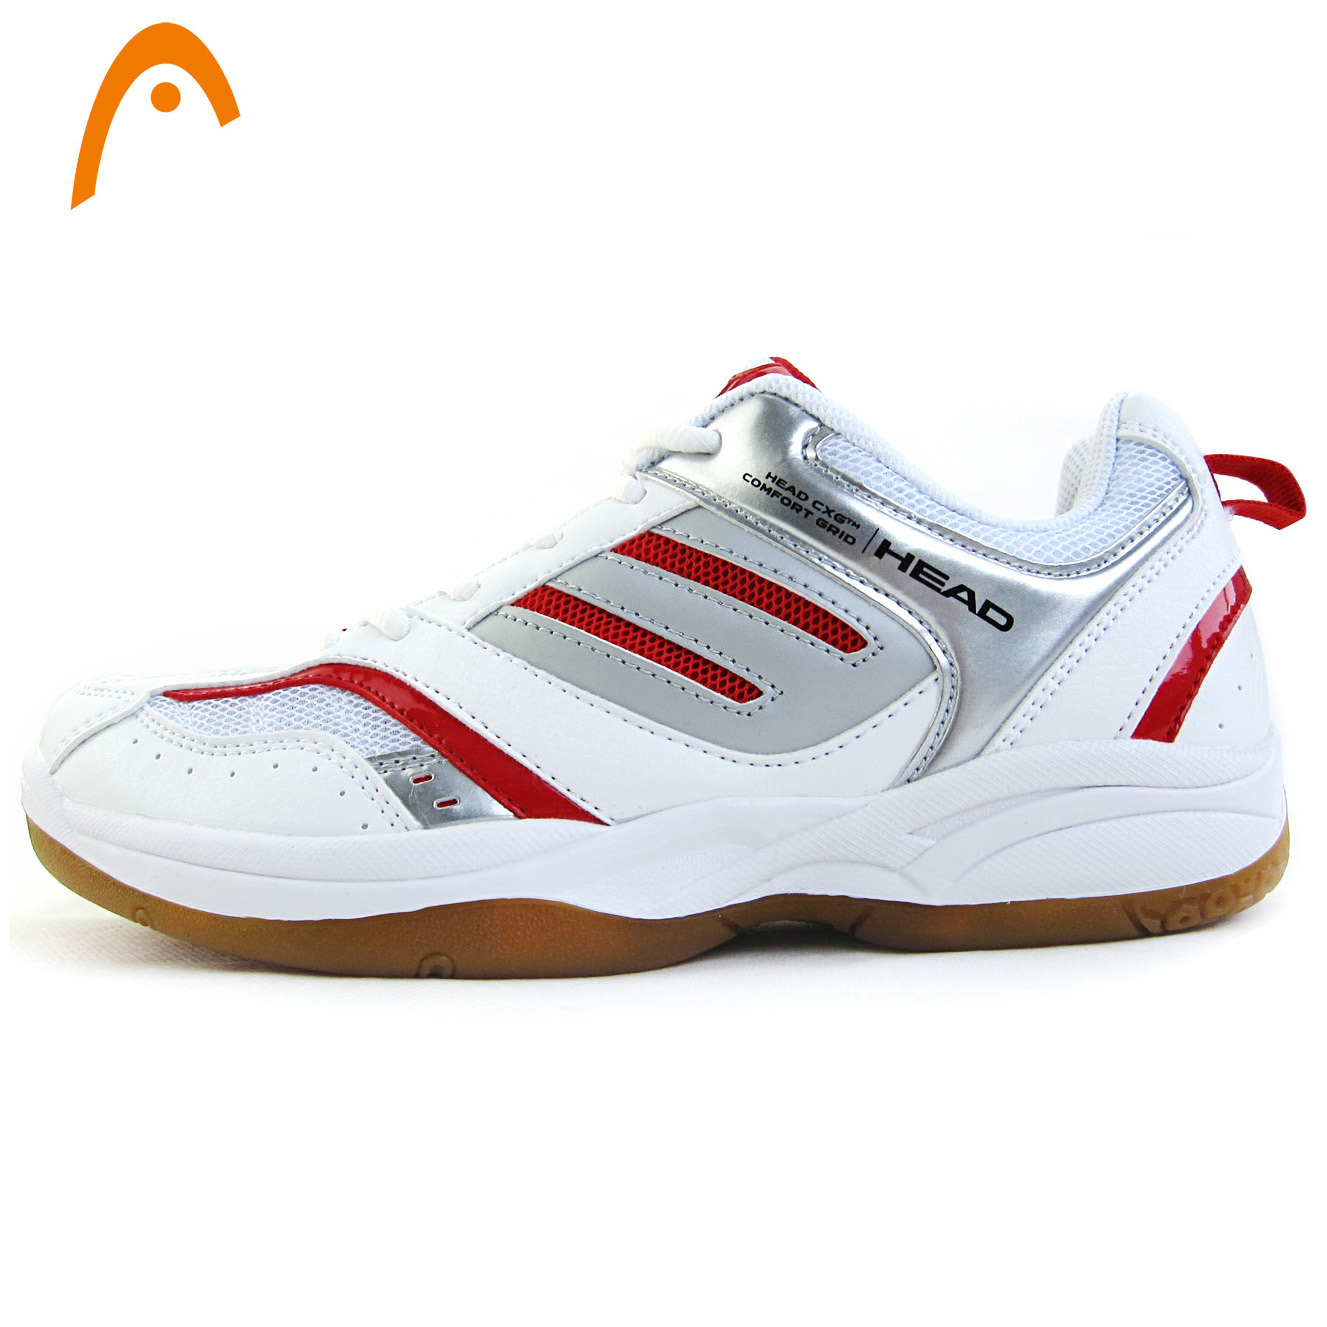 Badminton shoes men and women genuine hyde/head 912 breathable slip badminton shoes/sneakers free shipping